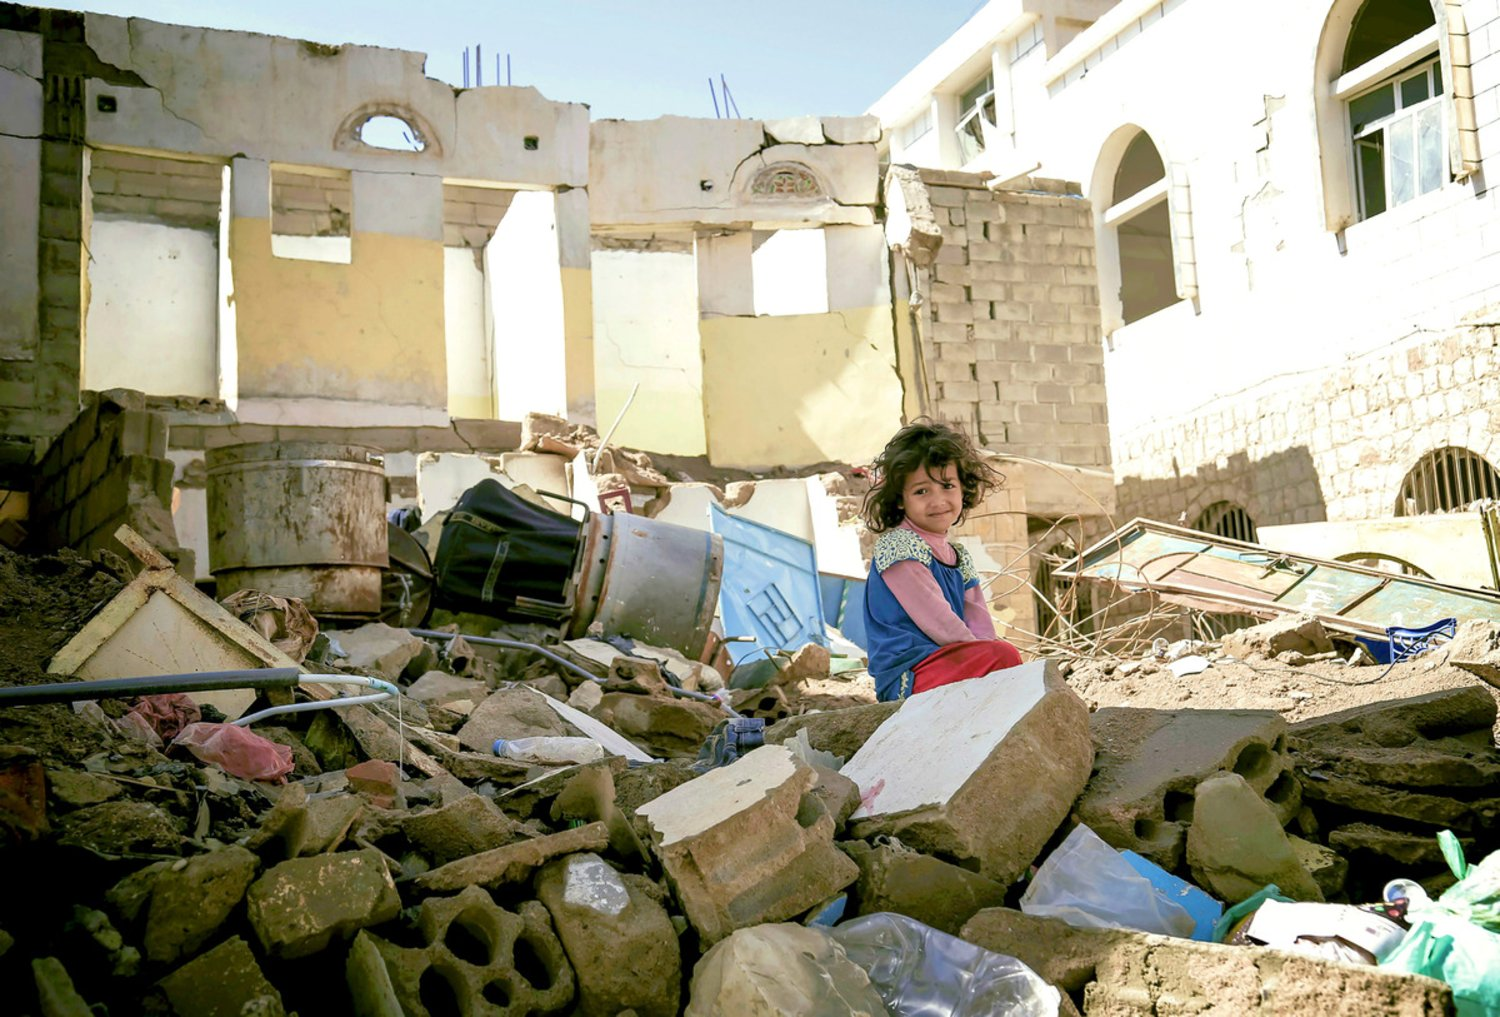 Donate for Yemen: A girl sitting in-between ruins